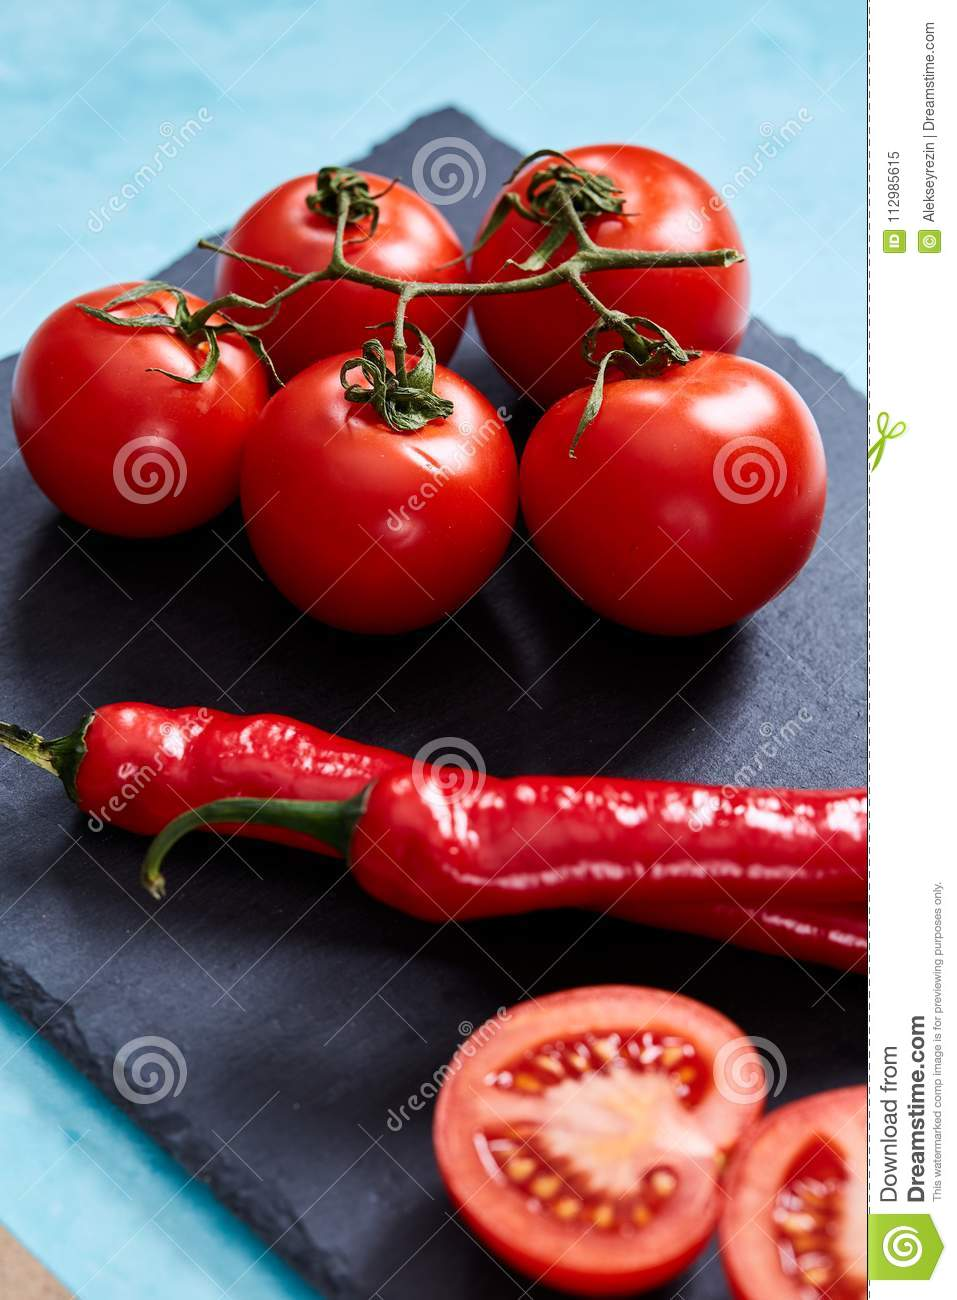 Composition of tomato bunch and sweet pepper on black piece of board, top view, close-up.